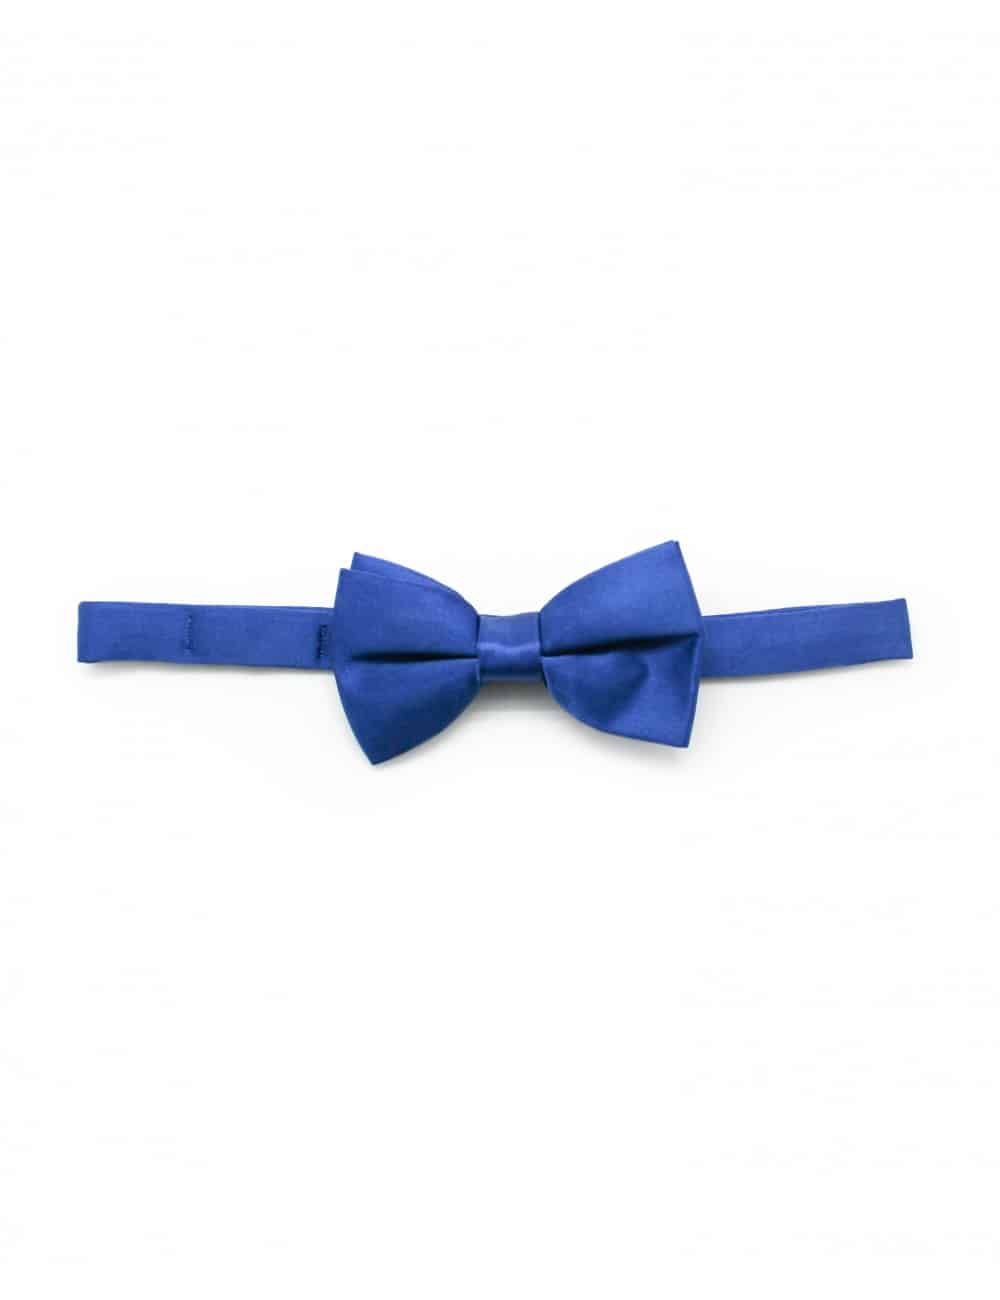 Solid Imperial Blue Woven Bowtie WBT8.5